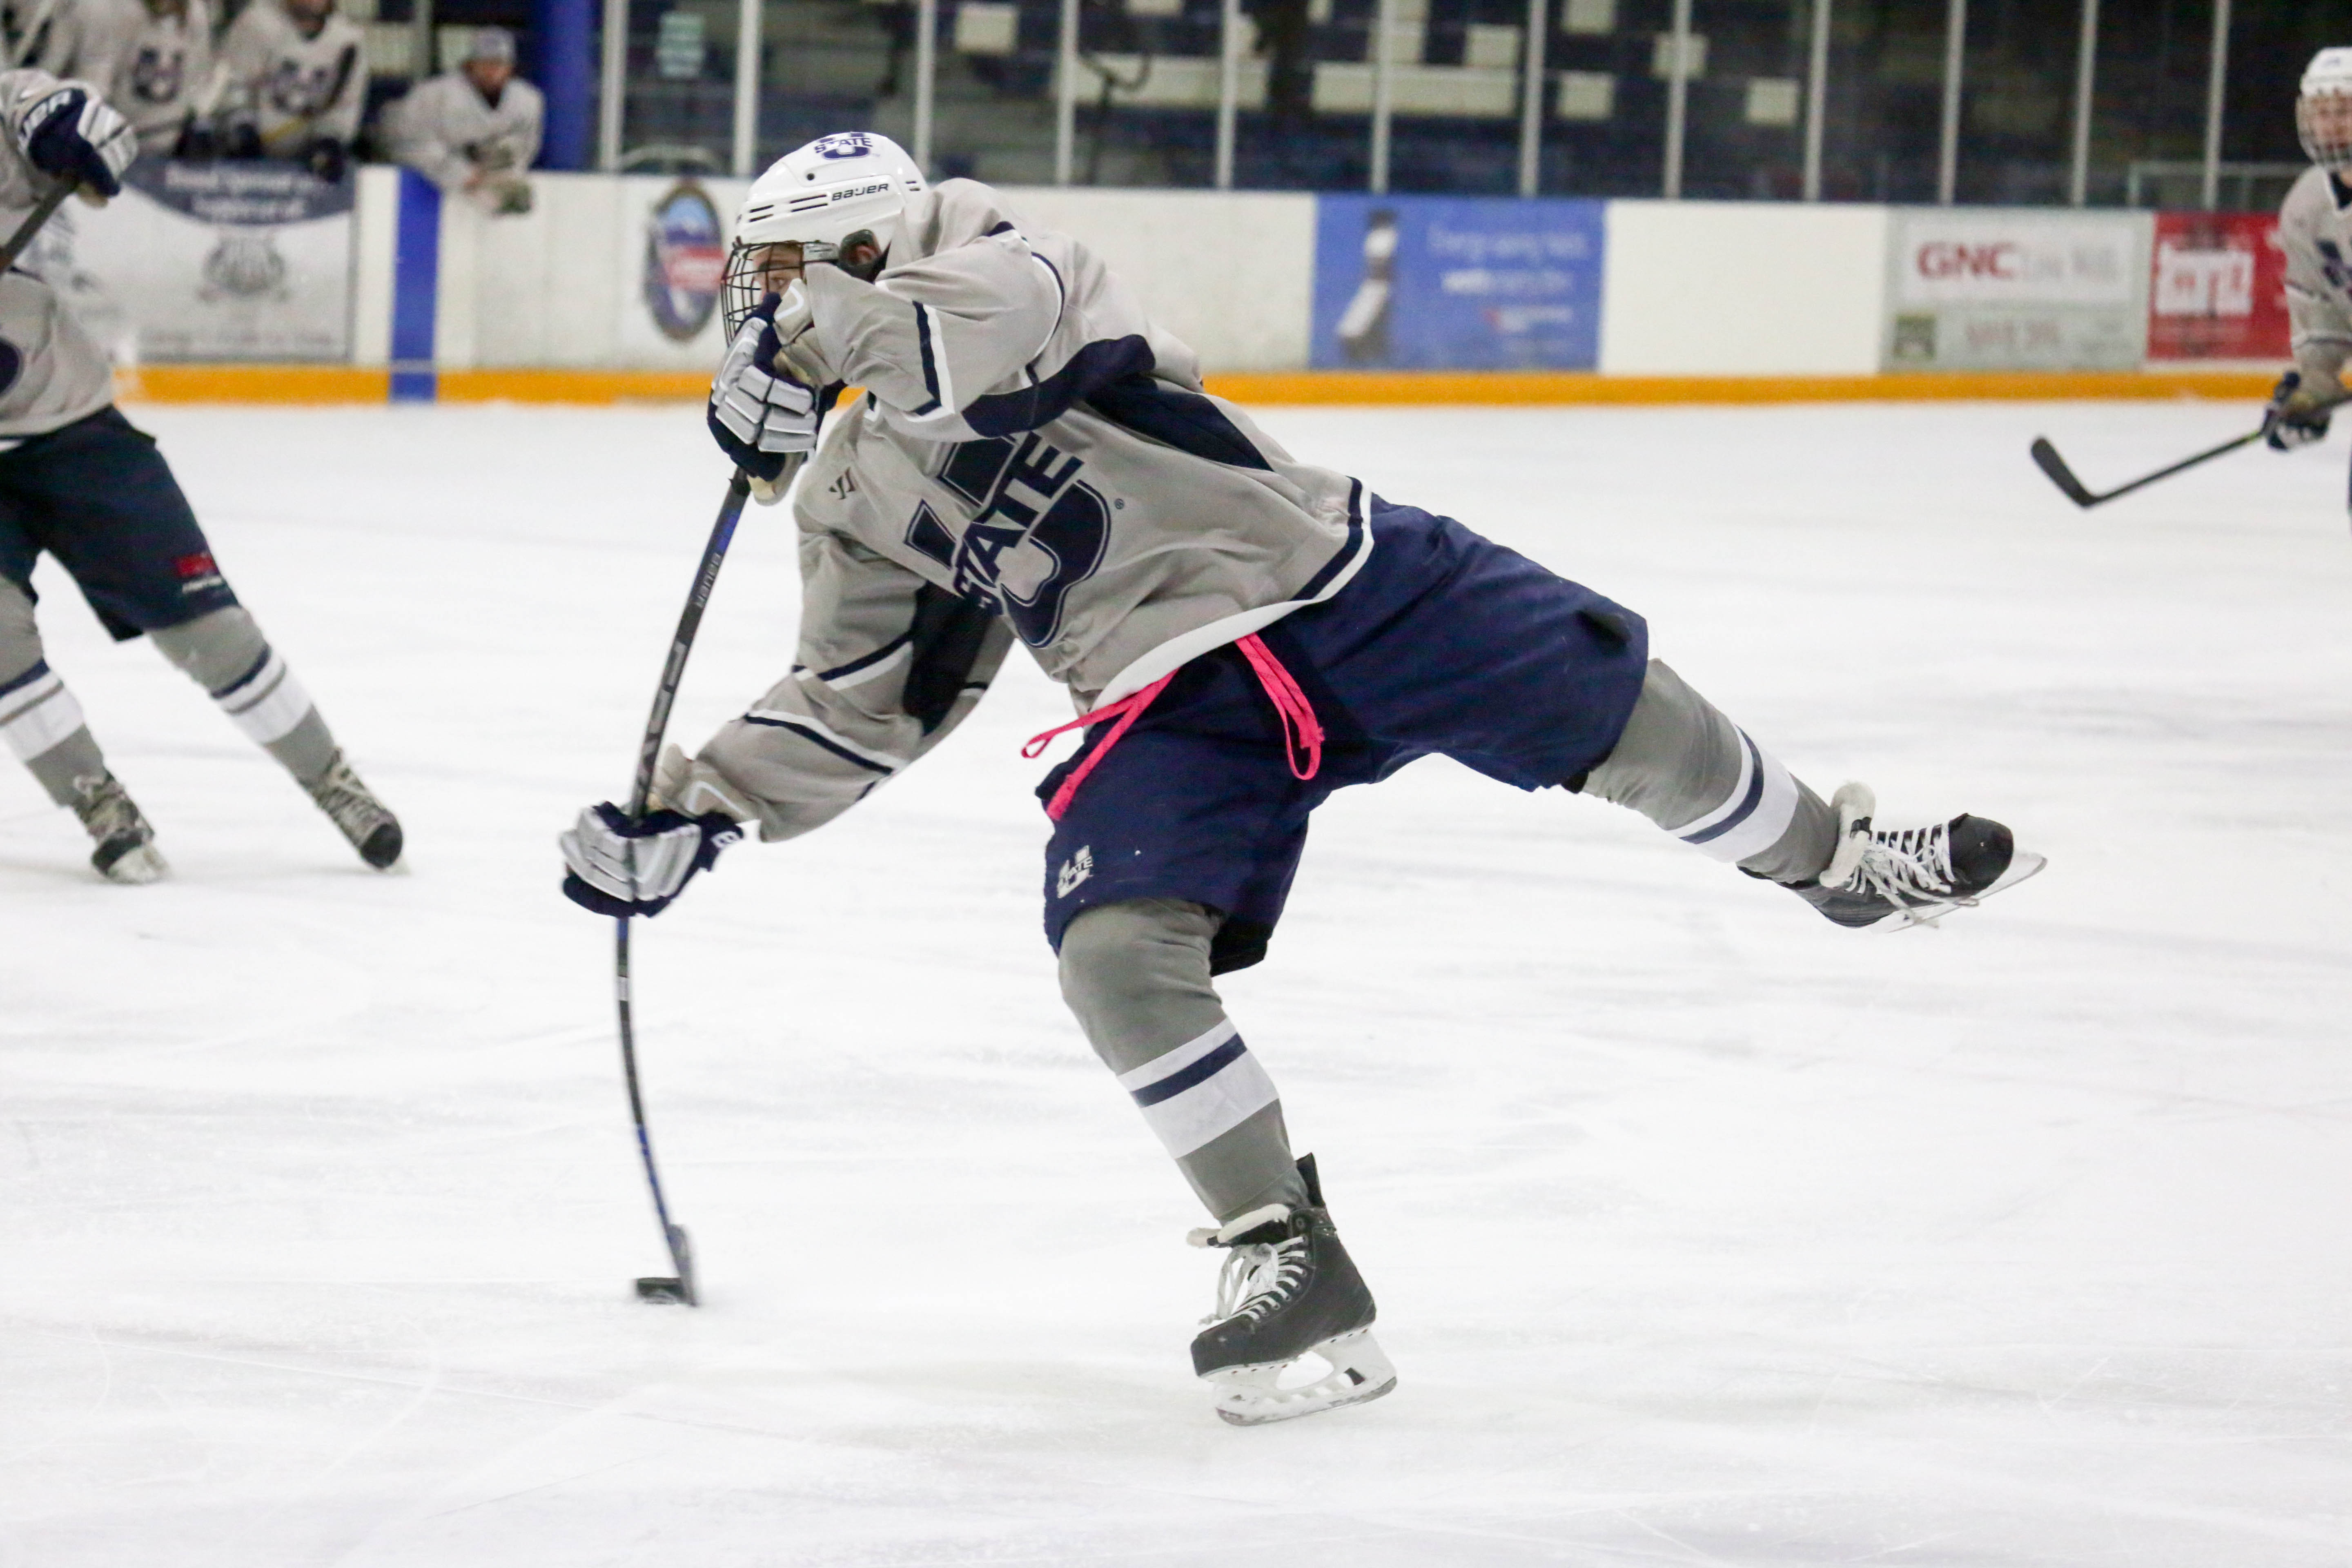 Last-minute hat trick wins game for Aggies u0026middot; HockeySports